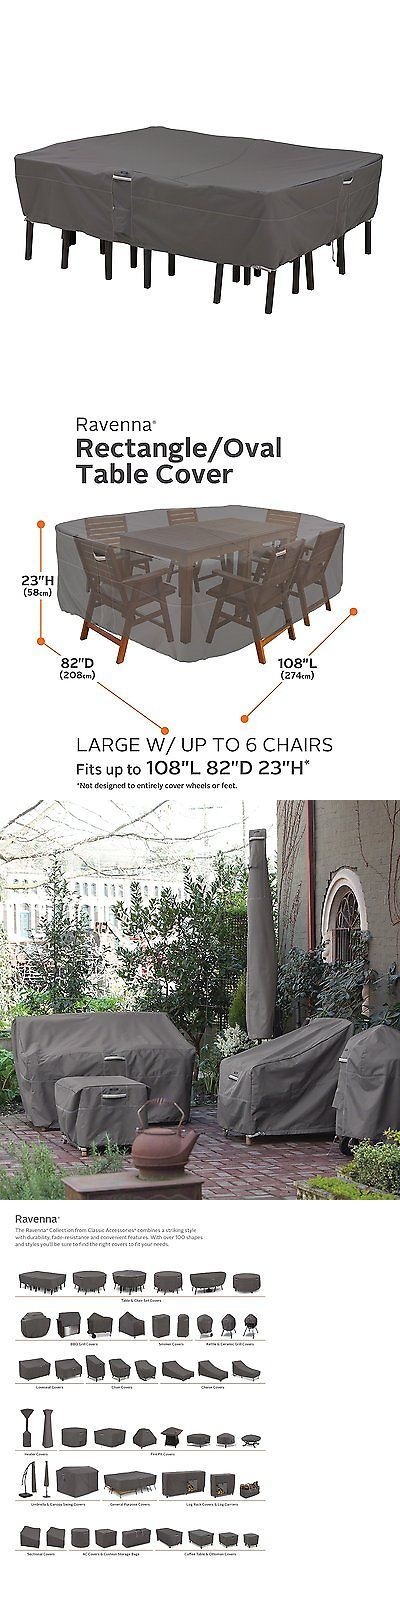 Outdoor Furniture Covers 177031: Large Outdoor Patio Furniture Cover Rectangle Chair Table Waterproof Garden Deck -> BUY IT NOW ONLY: $72.2 on eBay!